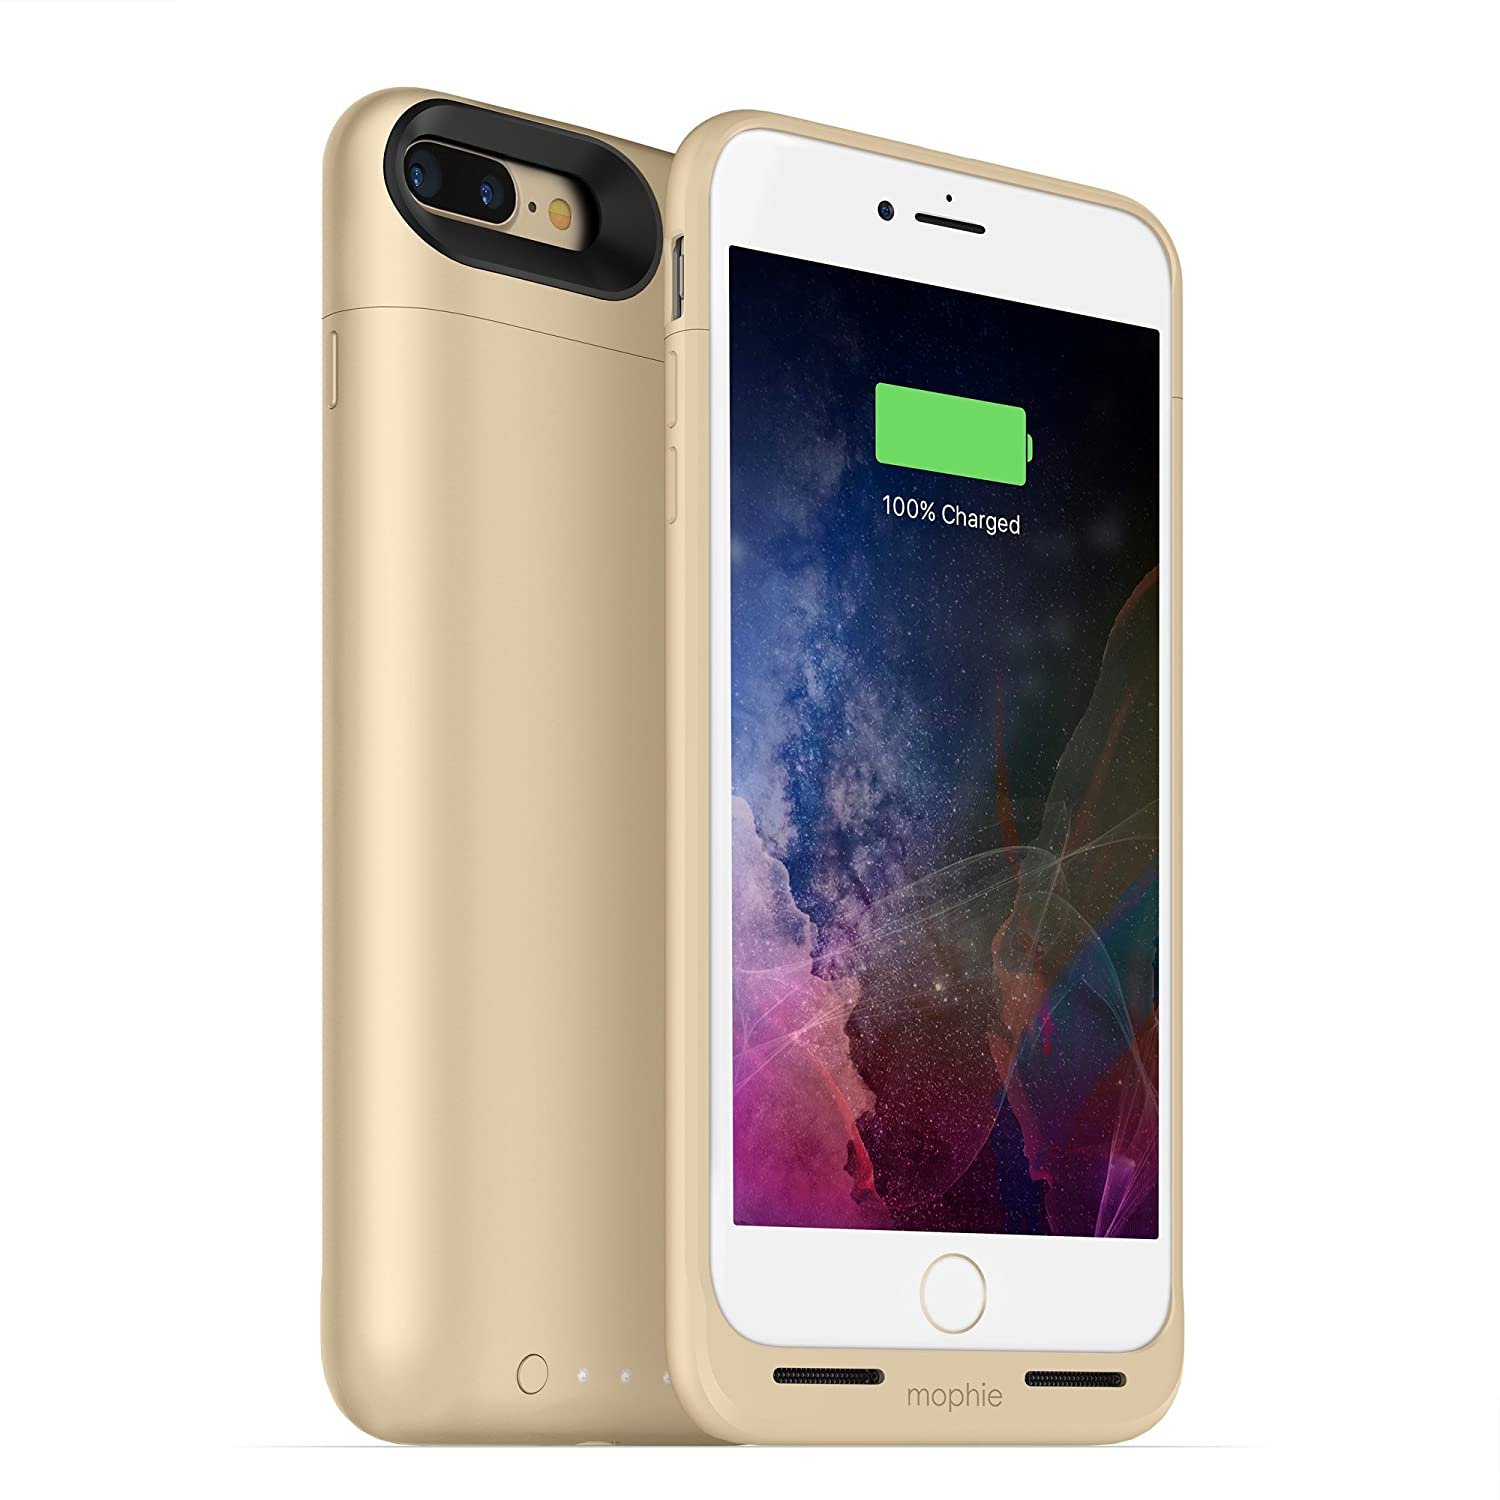 mophie juice pack wireless  - Charge Force Wireless Power - Wireless Charging Protective Battery Pack Case for iPhone 7 Plus – Gold MOPQ9 3785_JPA-IP7P-GLD